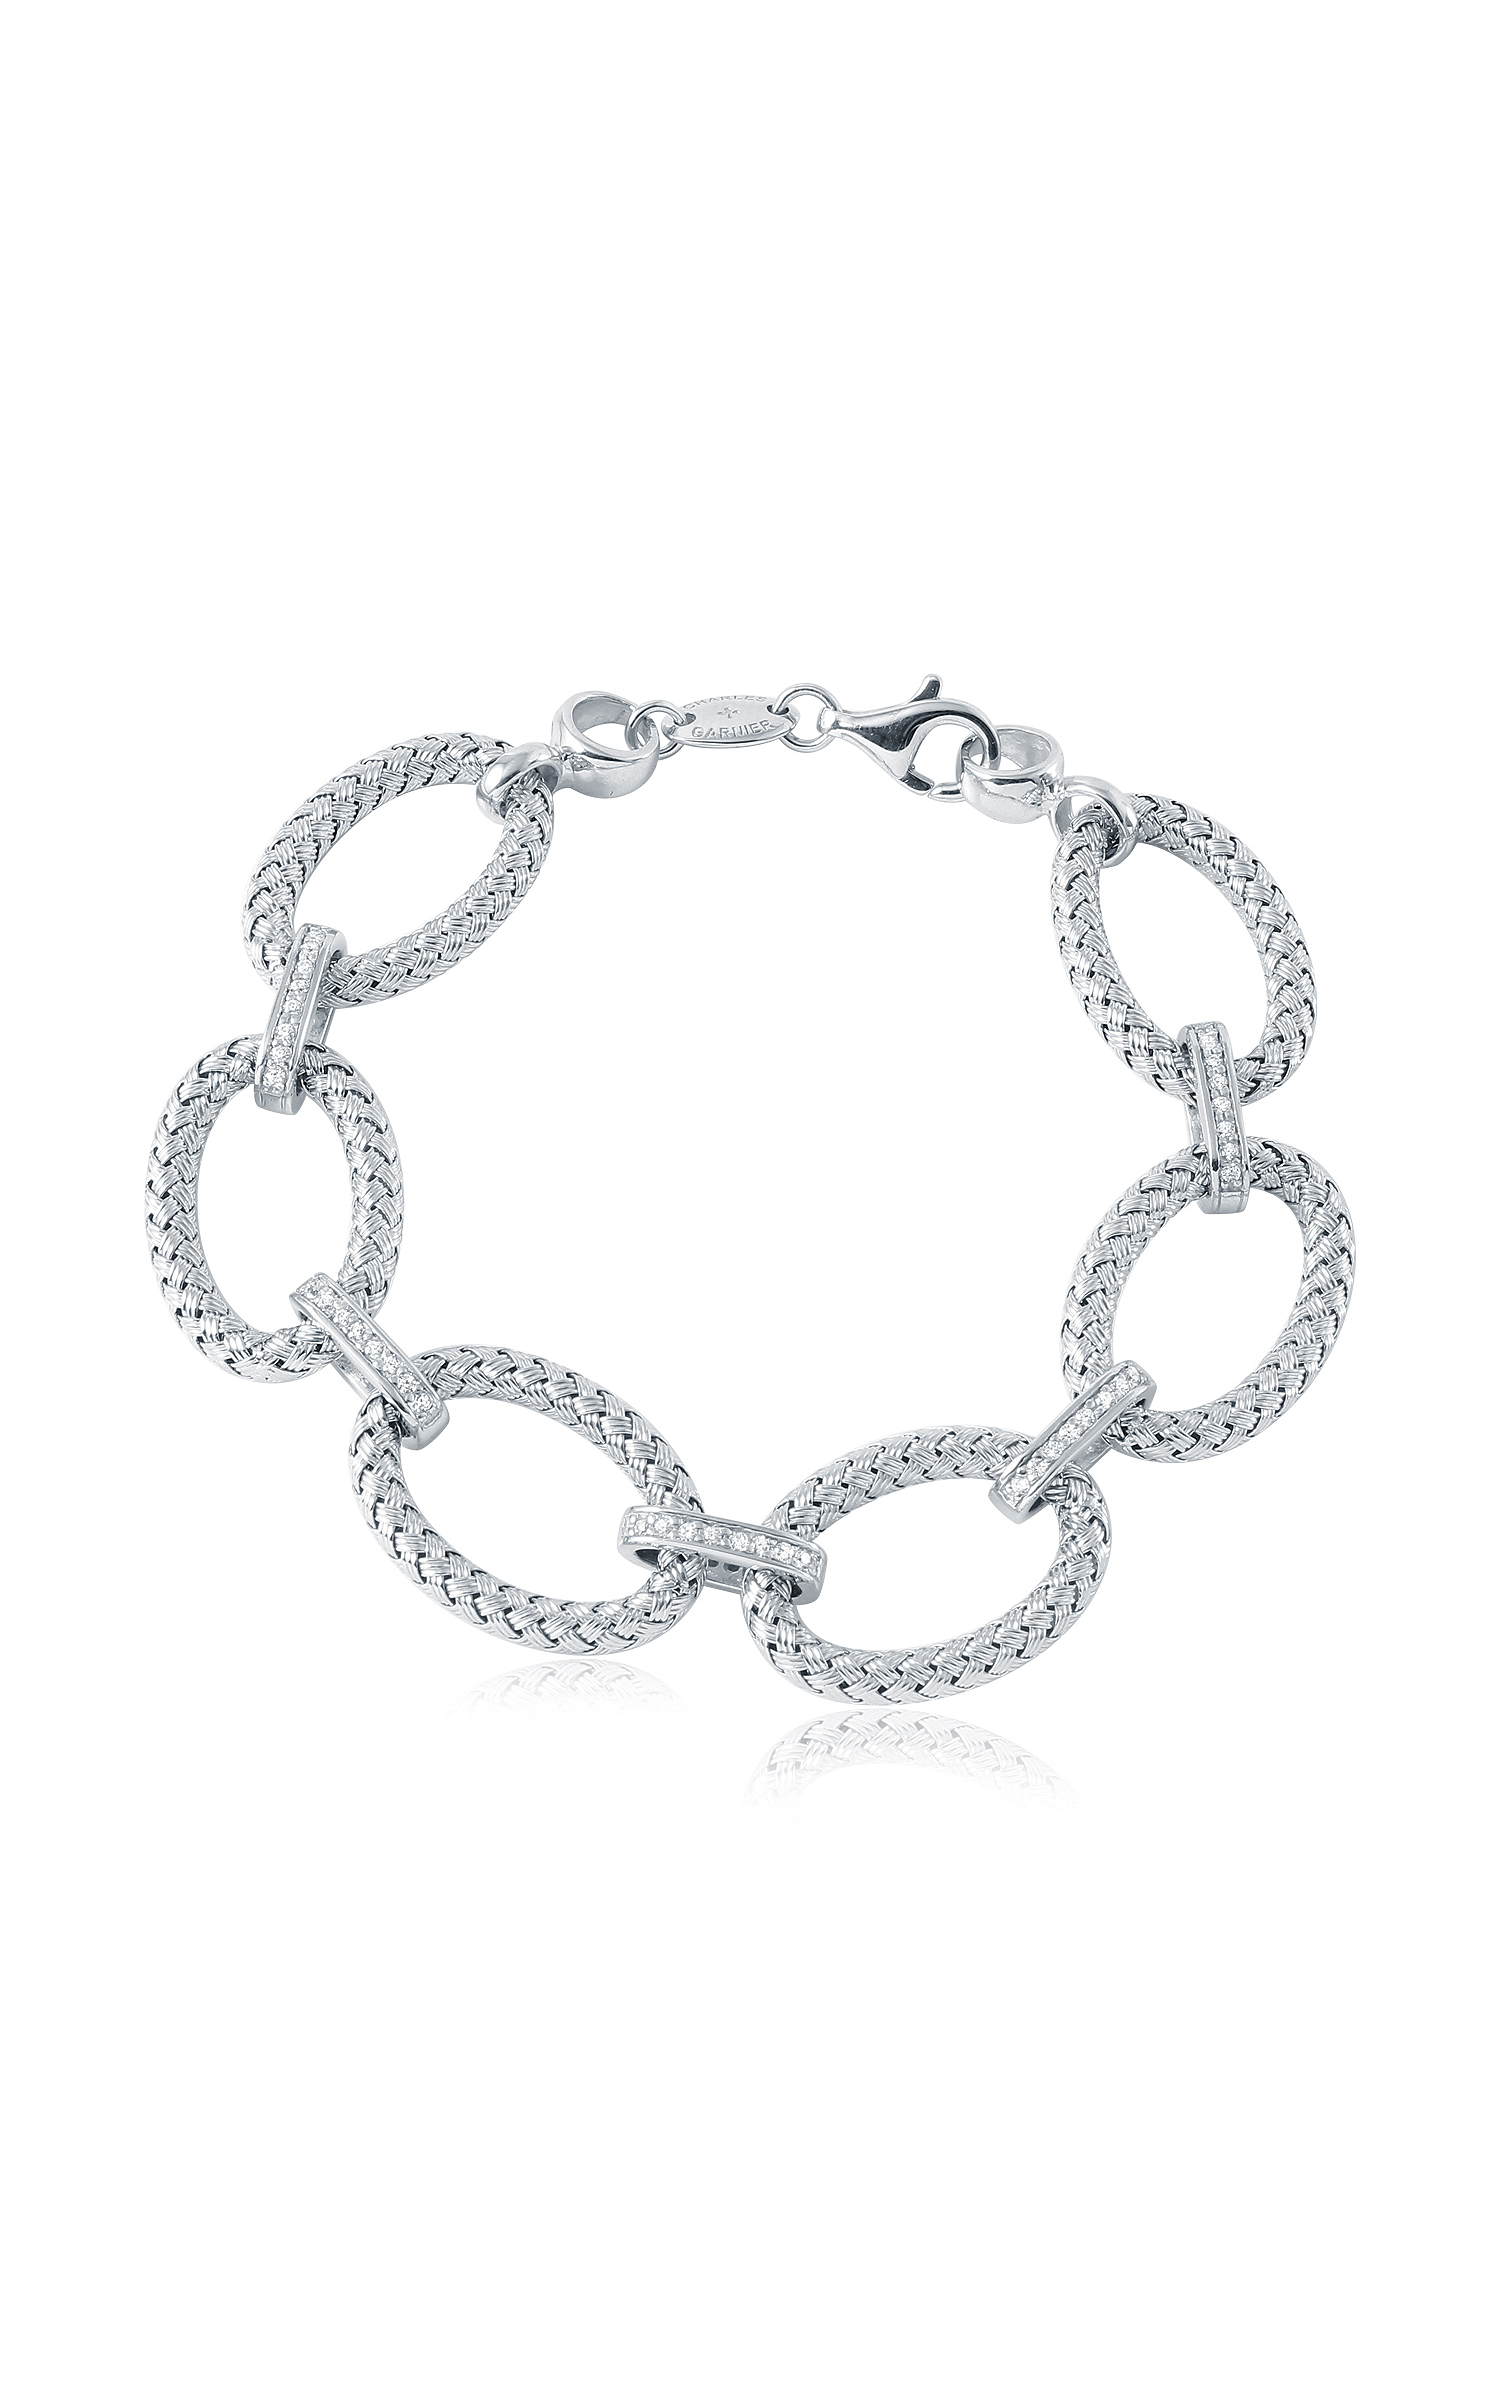 Charles Garnier Bracelets Bracelet Paolo Collection MLD8158WZ80 product image